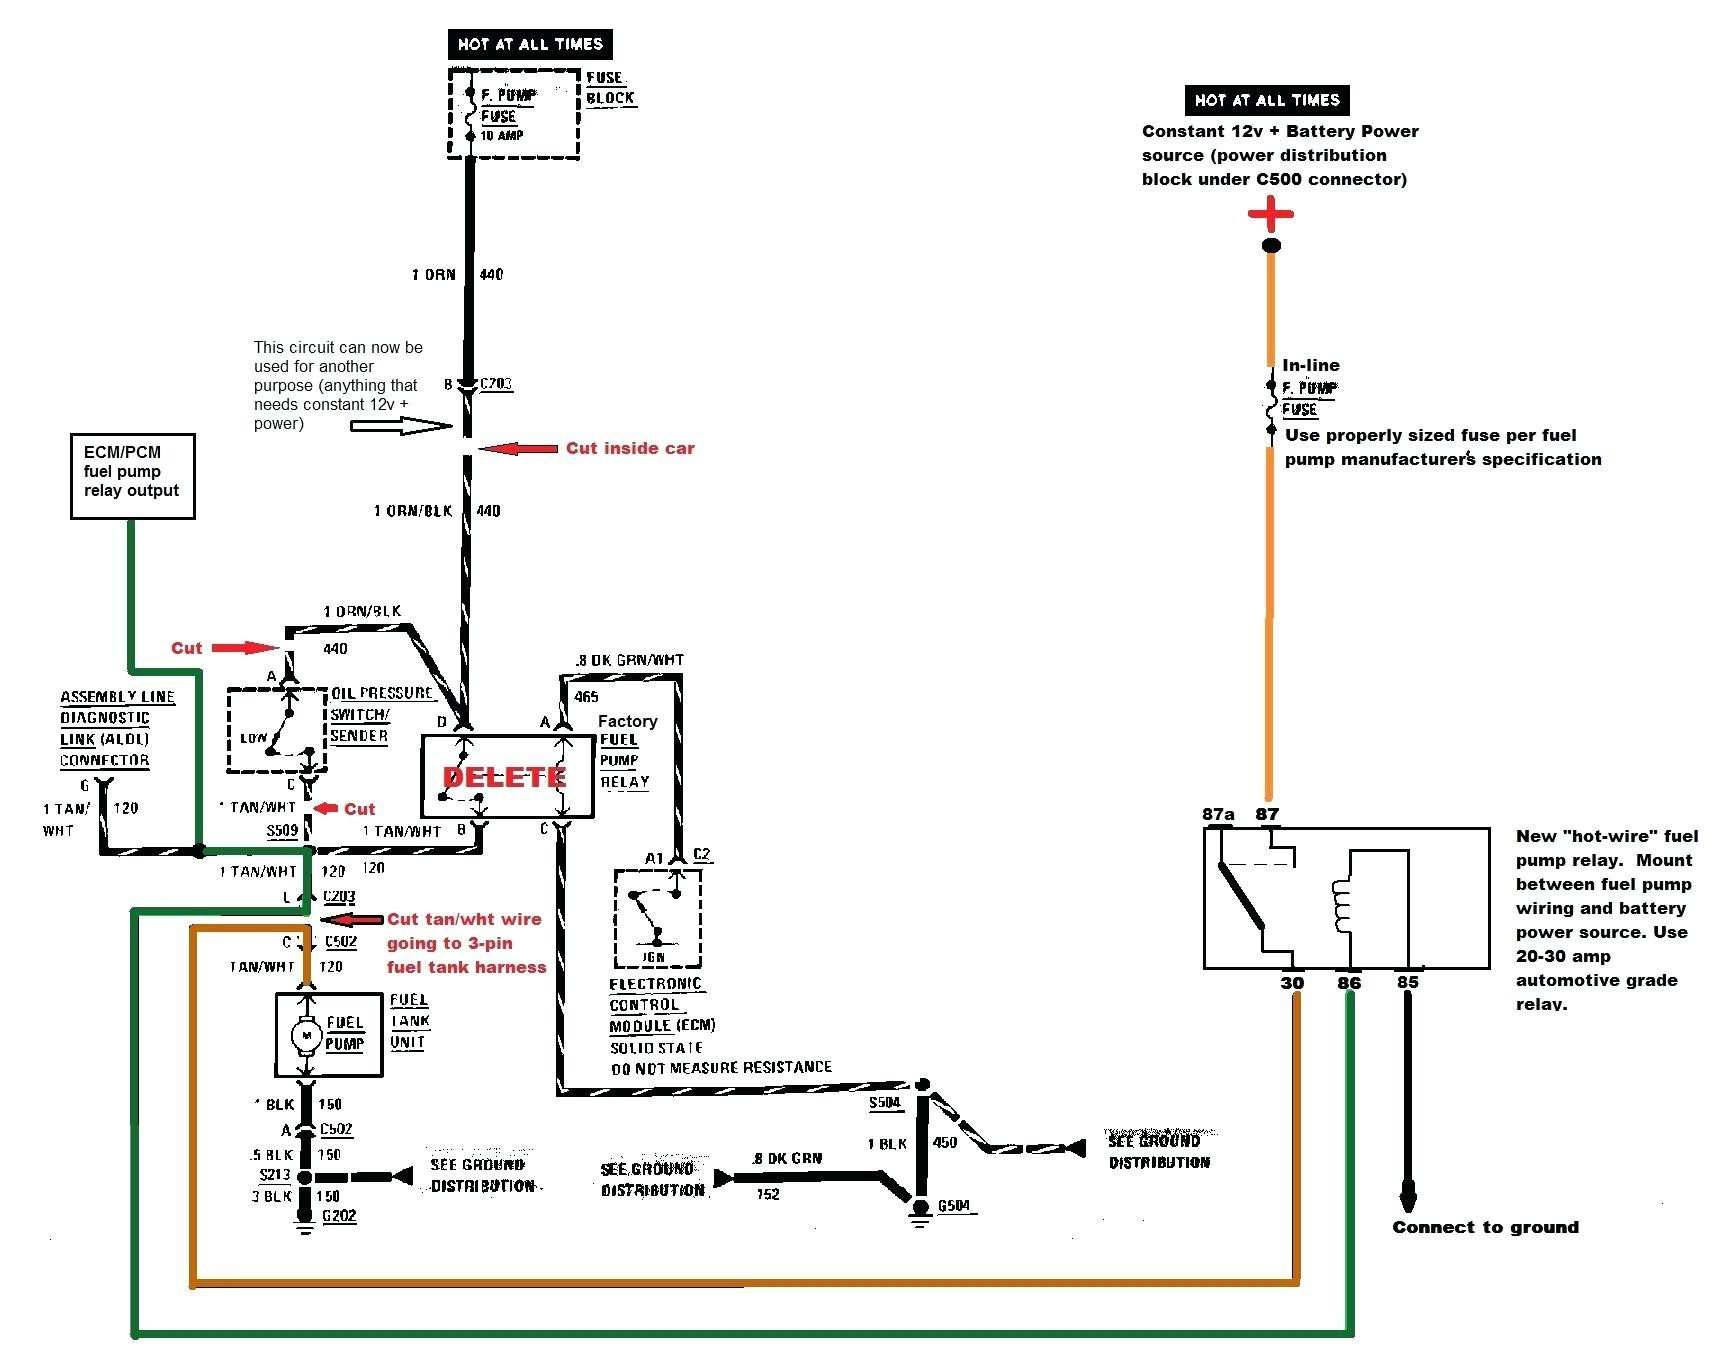 12v Starter solenoid Wiring Diagram Luxury Automotive Relay Wiring Diagram 12v astonishing for A 4 Pin